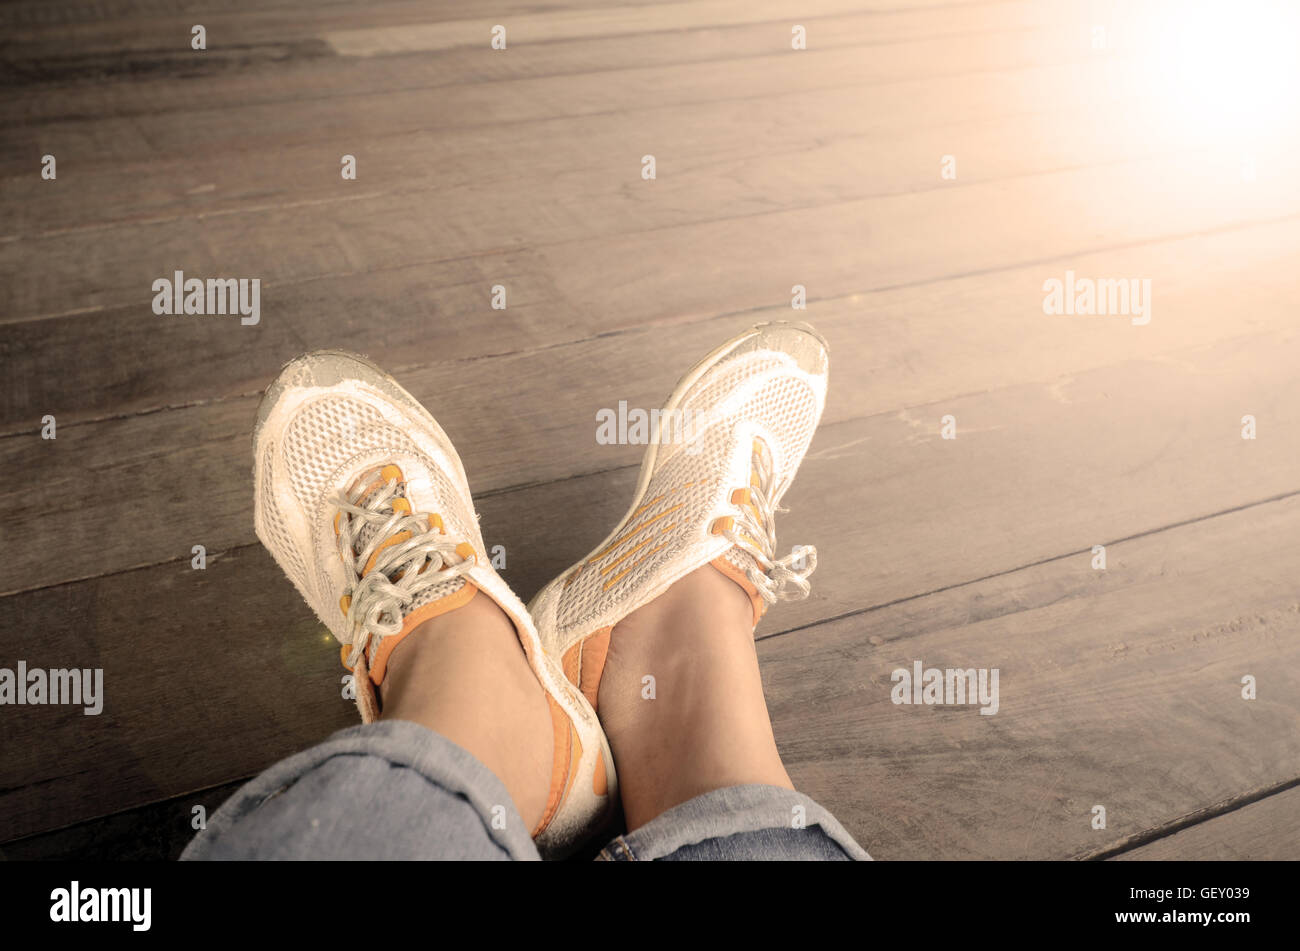 Relax time with one fine day. Stock Photo